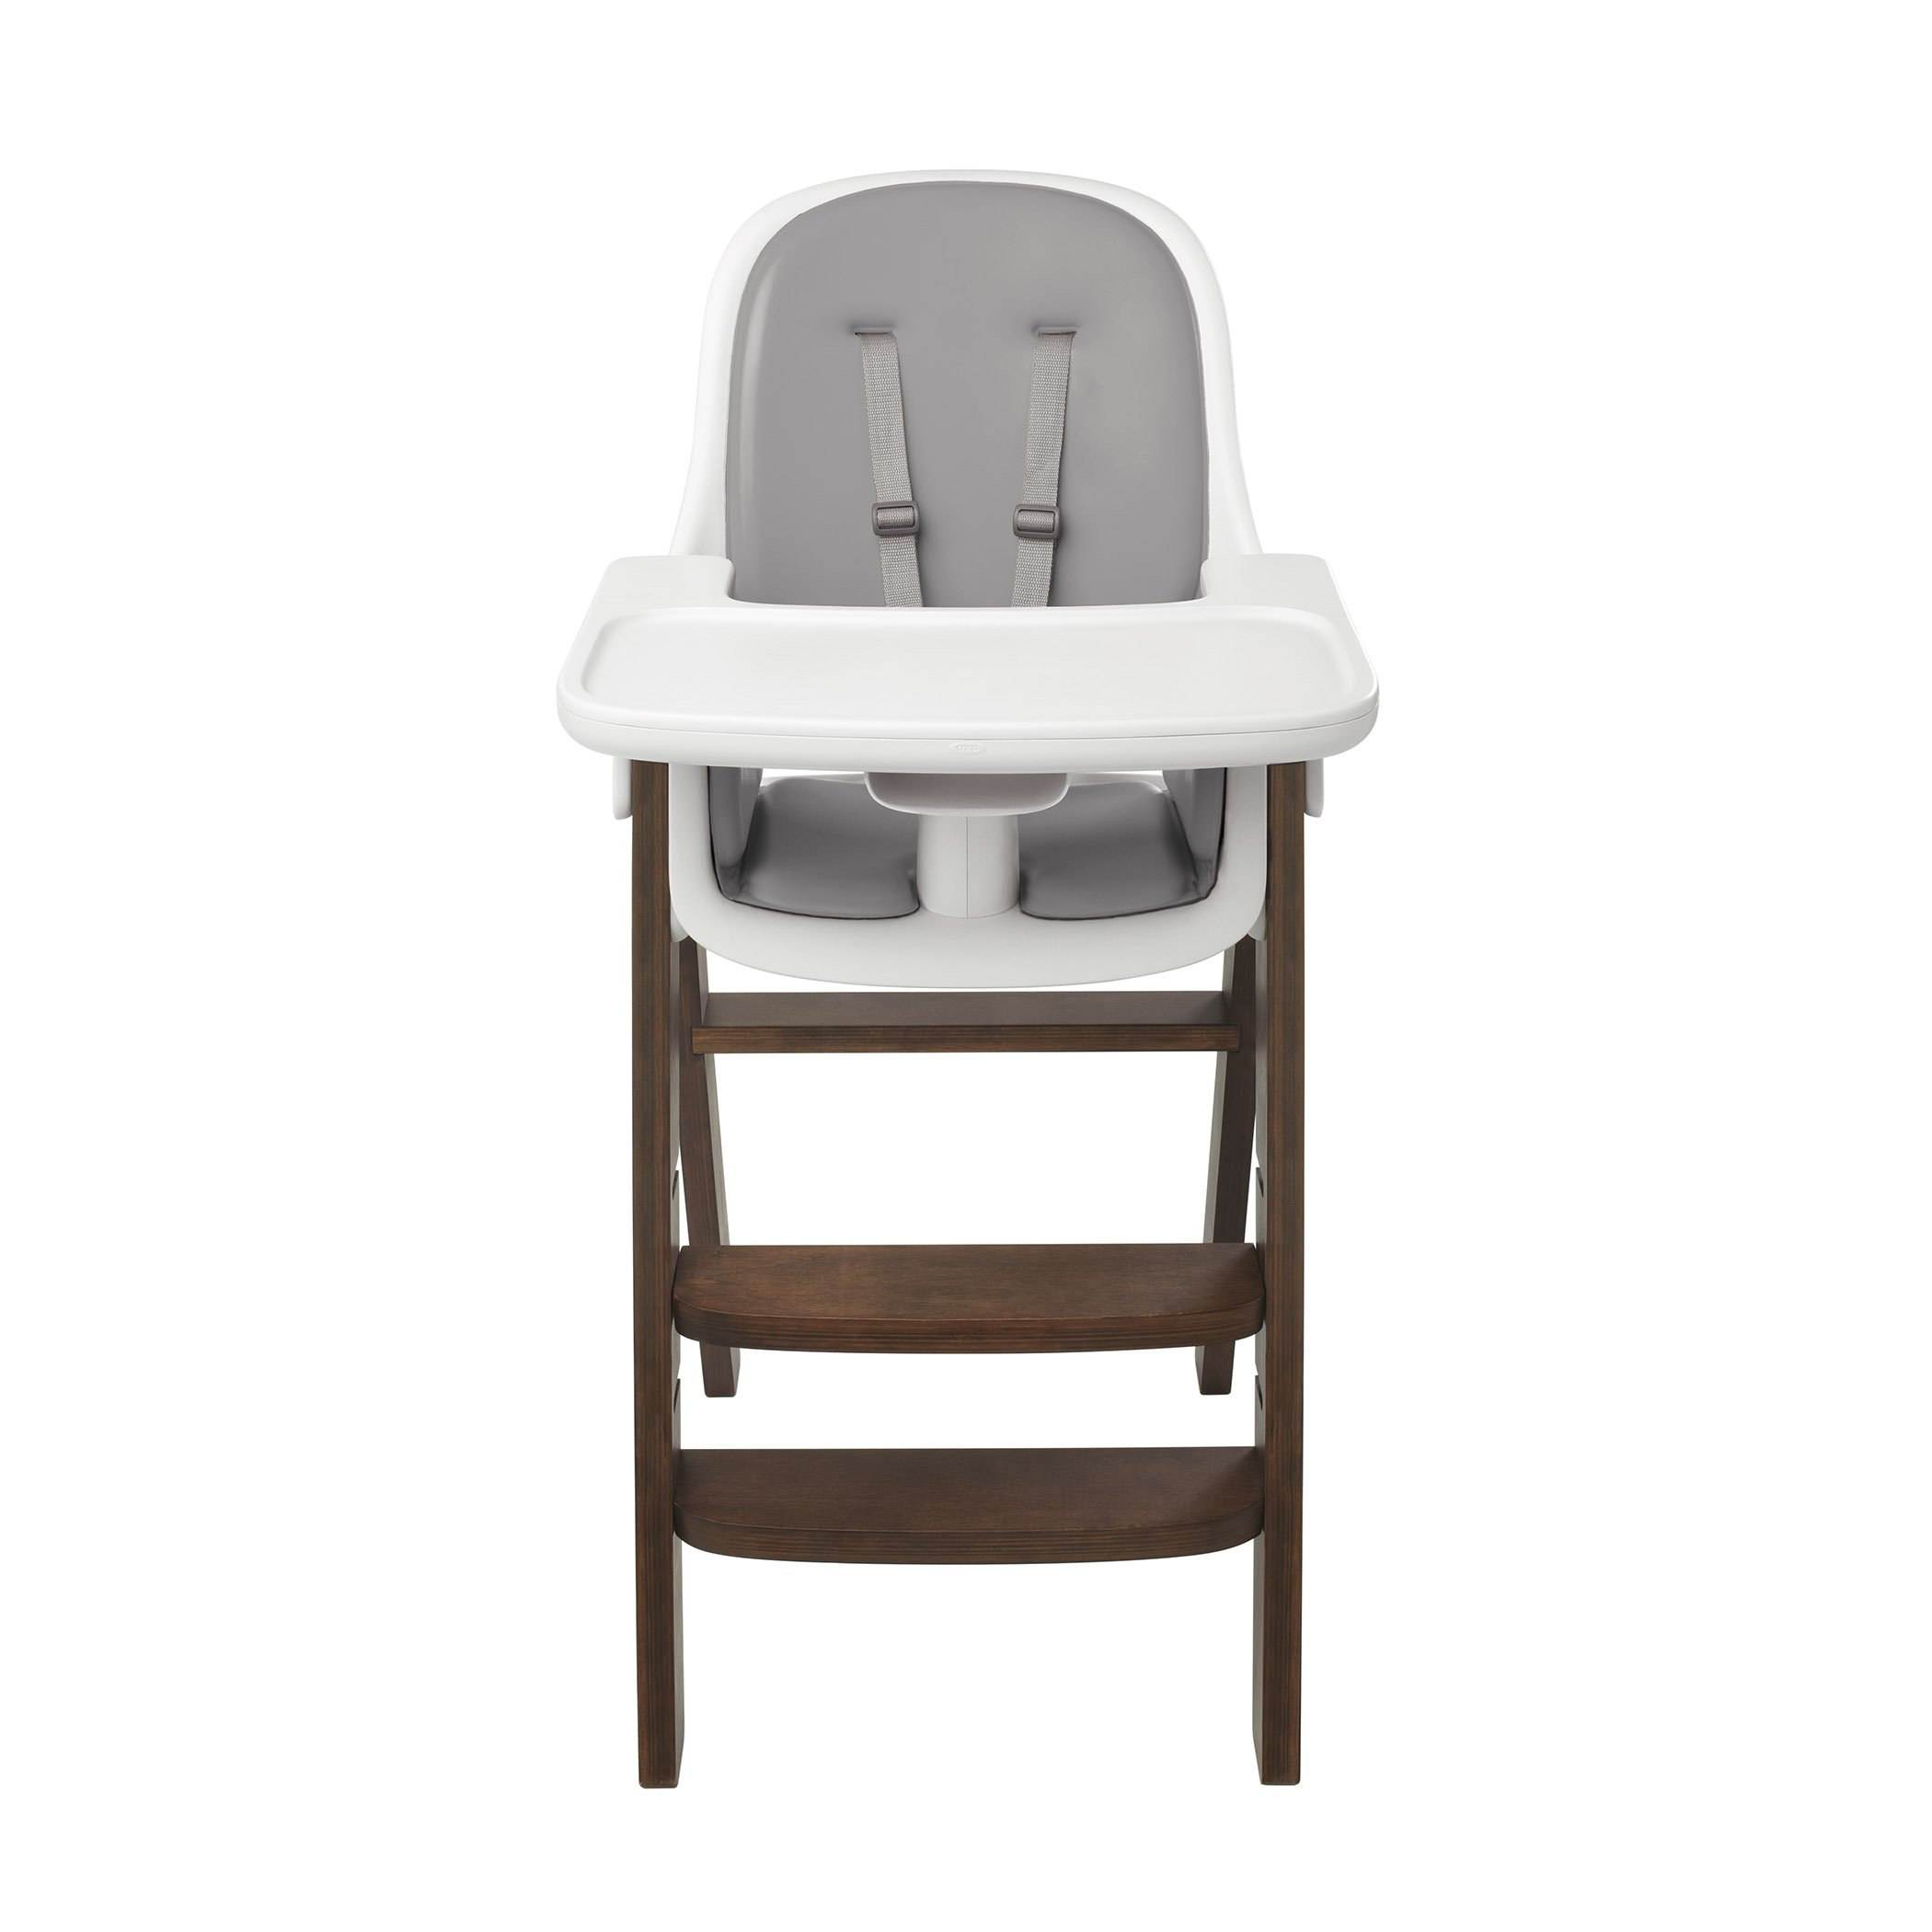 OXO Tot Sprout High Chair, Gray/Walnut